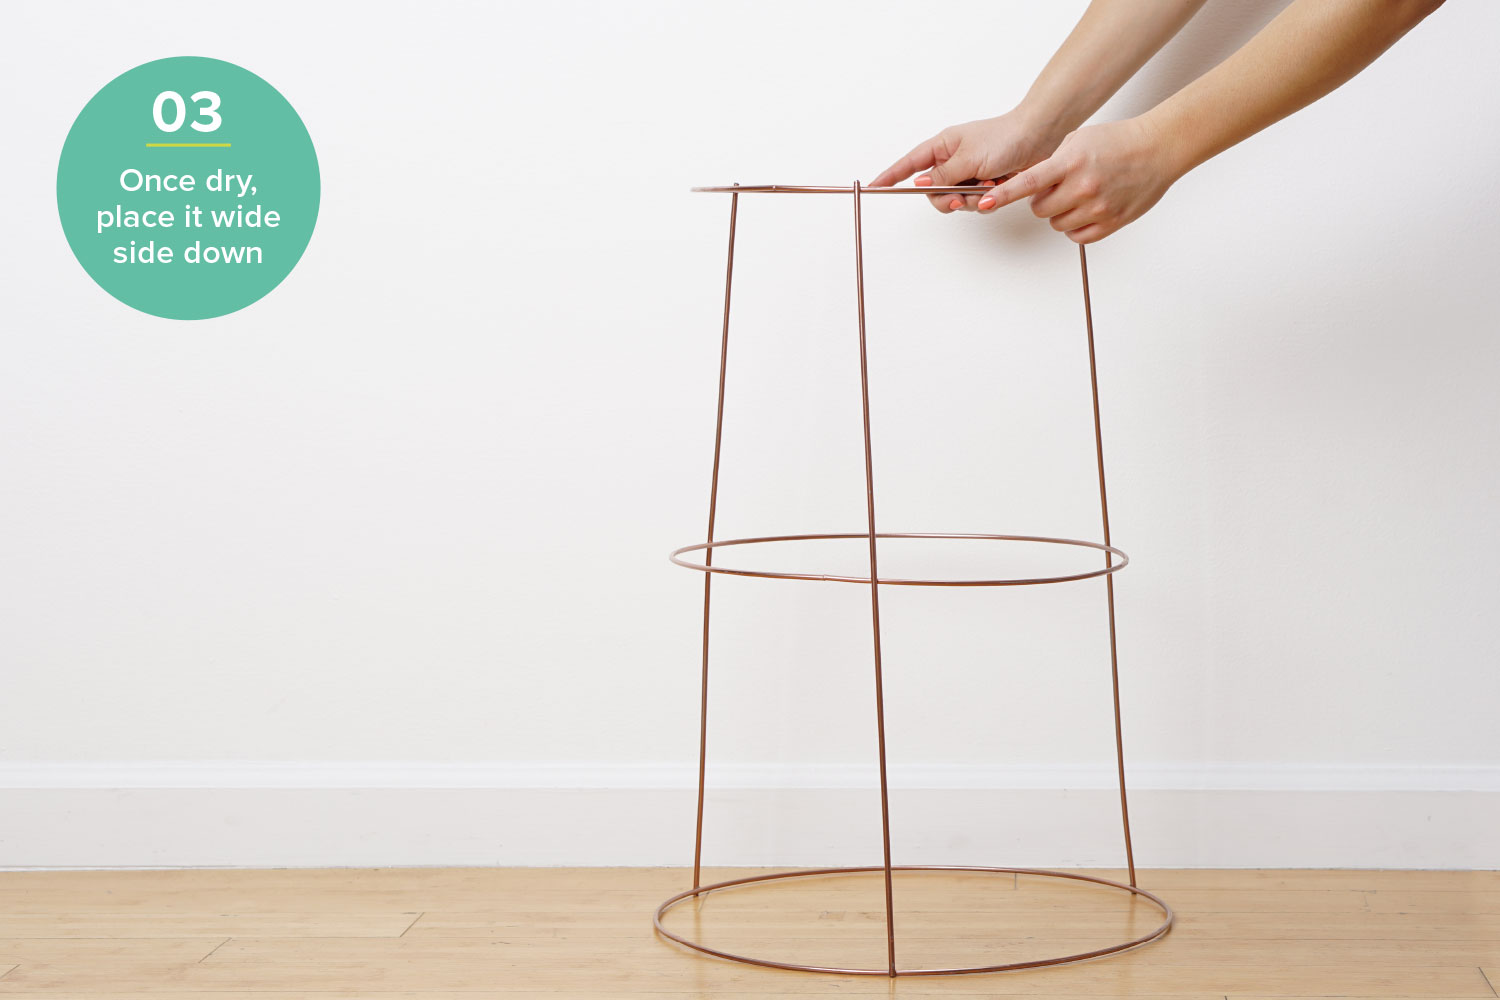 diy plant stand hardware hacks tomato cage plant stand step 3